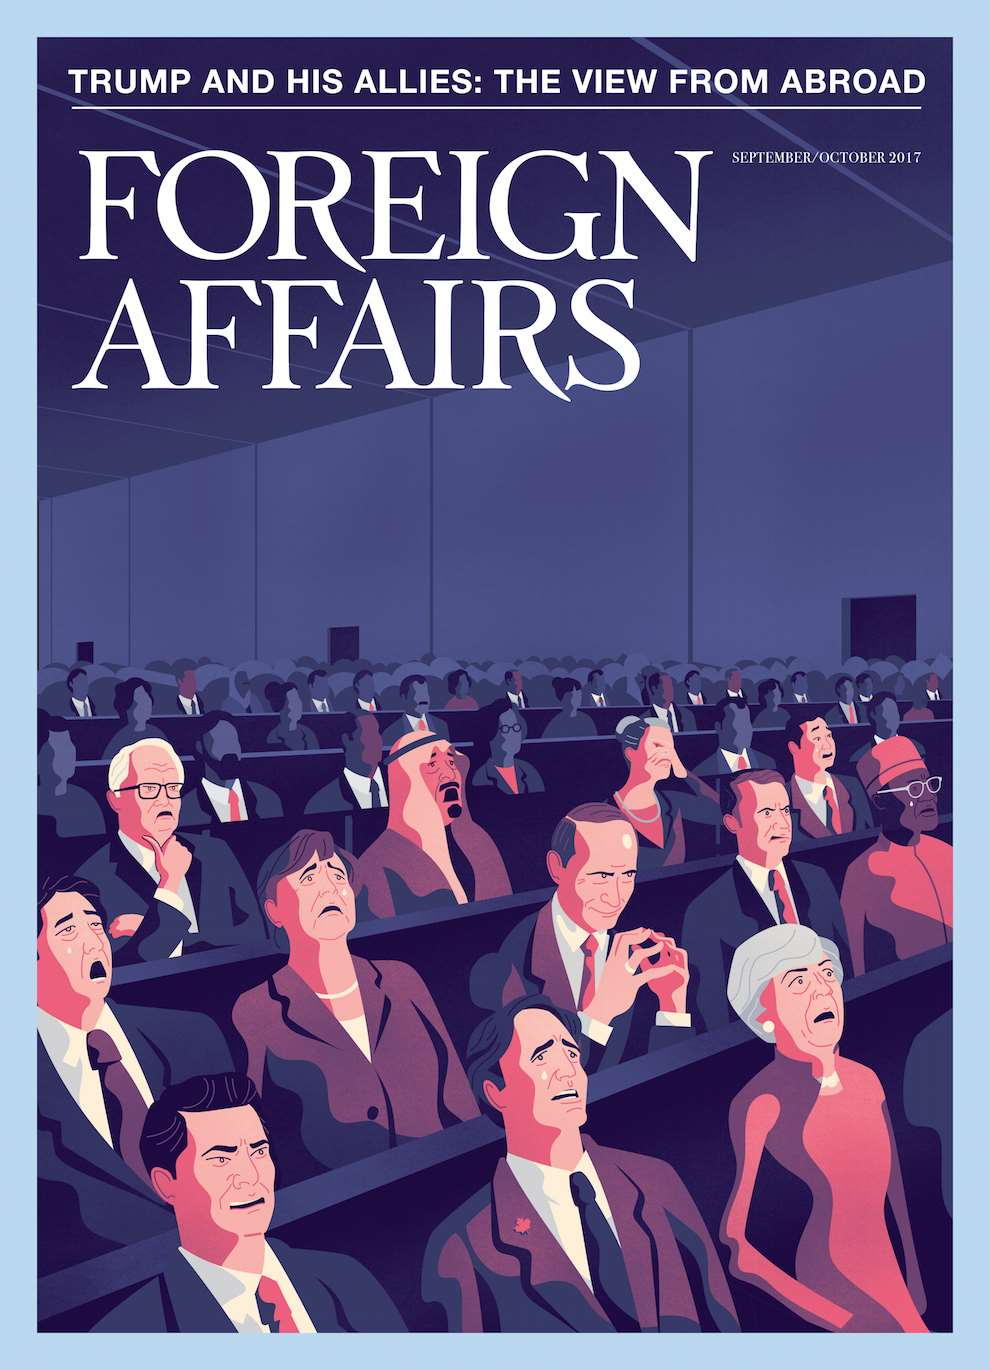 Jack Daly, Digital illustrated Foreign Affairs Poster titled 'Trump and his Allies: The view from Abroad,  with illustrated Theresa May and Putin.